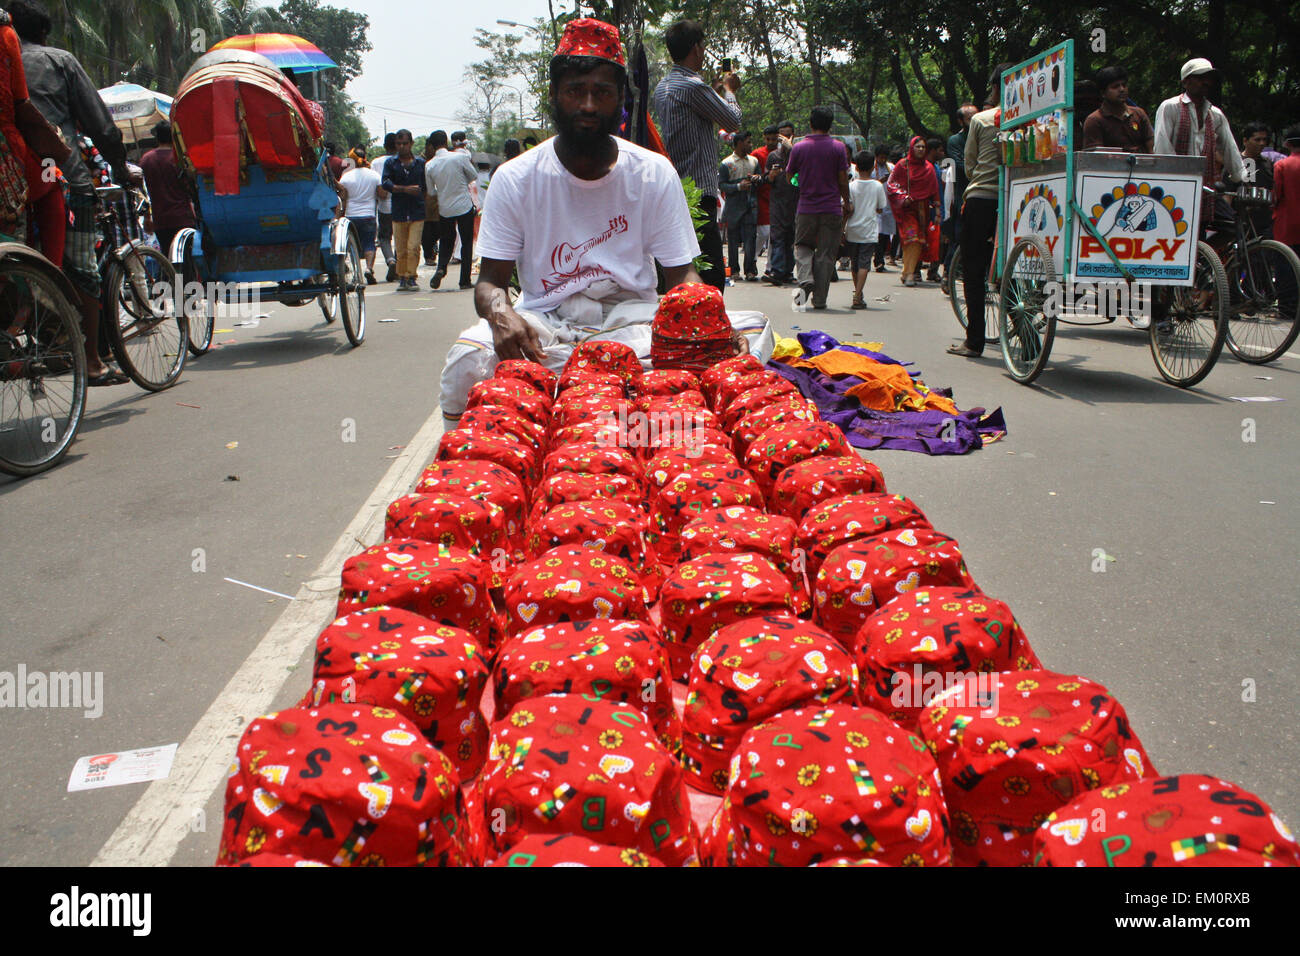 Dhaka, Bangladesh. 14th April, 2015. A street vendor waiting for customers on the street in a celebration day of - Stock Image